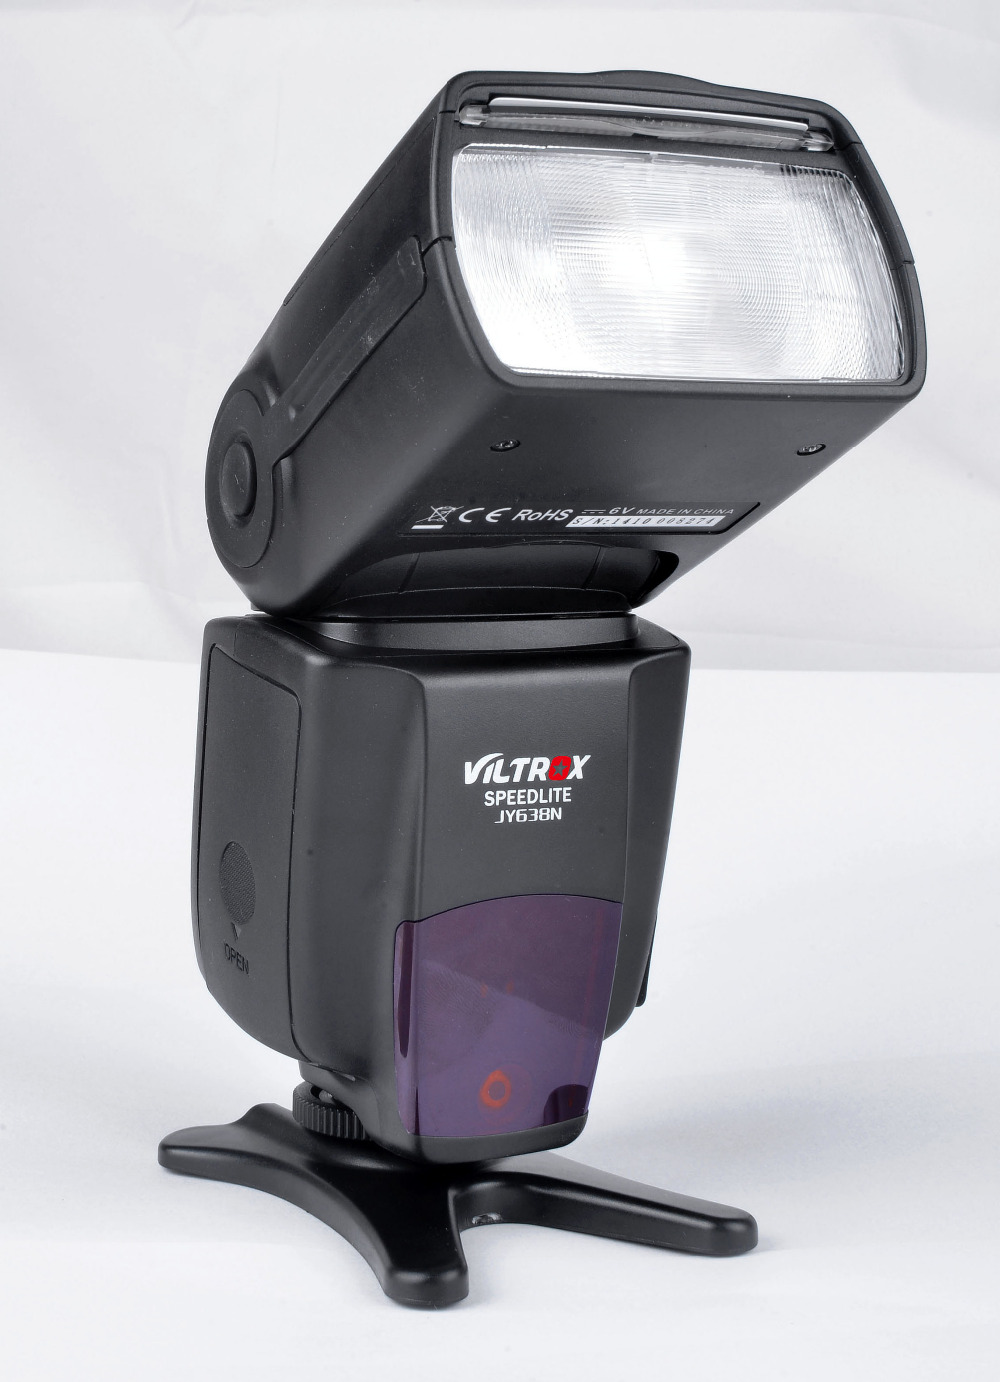 VILTROX JY-680N LCD i-TTL Flash Speedlite For Nikon D5100 D5200 D3100 D7100 D3200 D800 D700 D90 camera